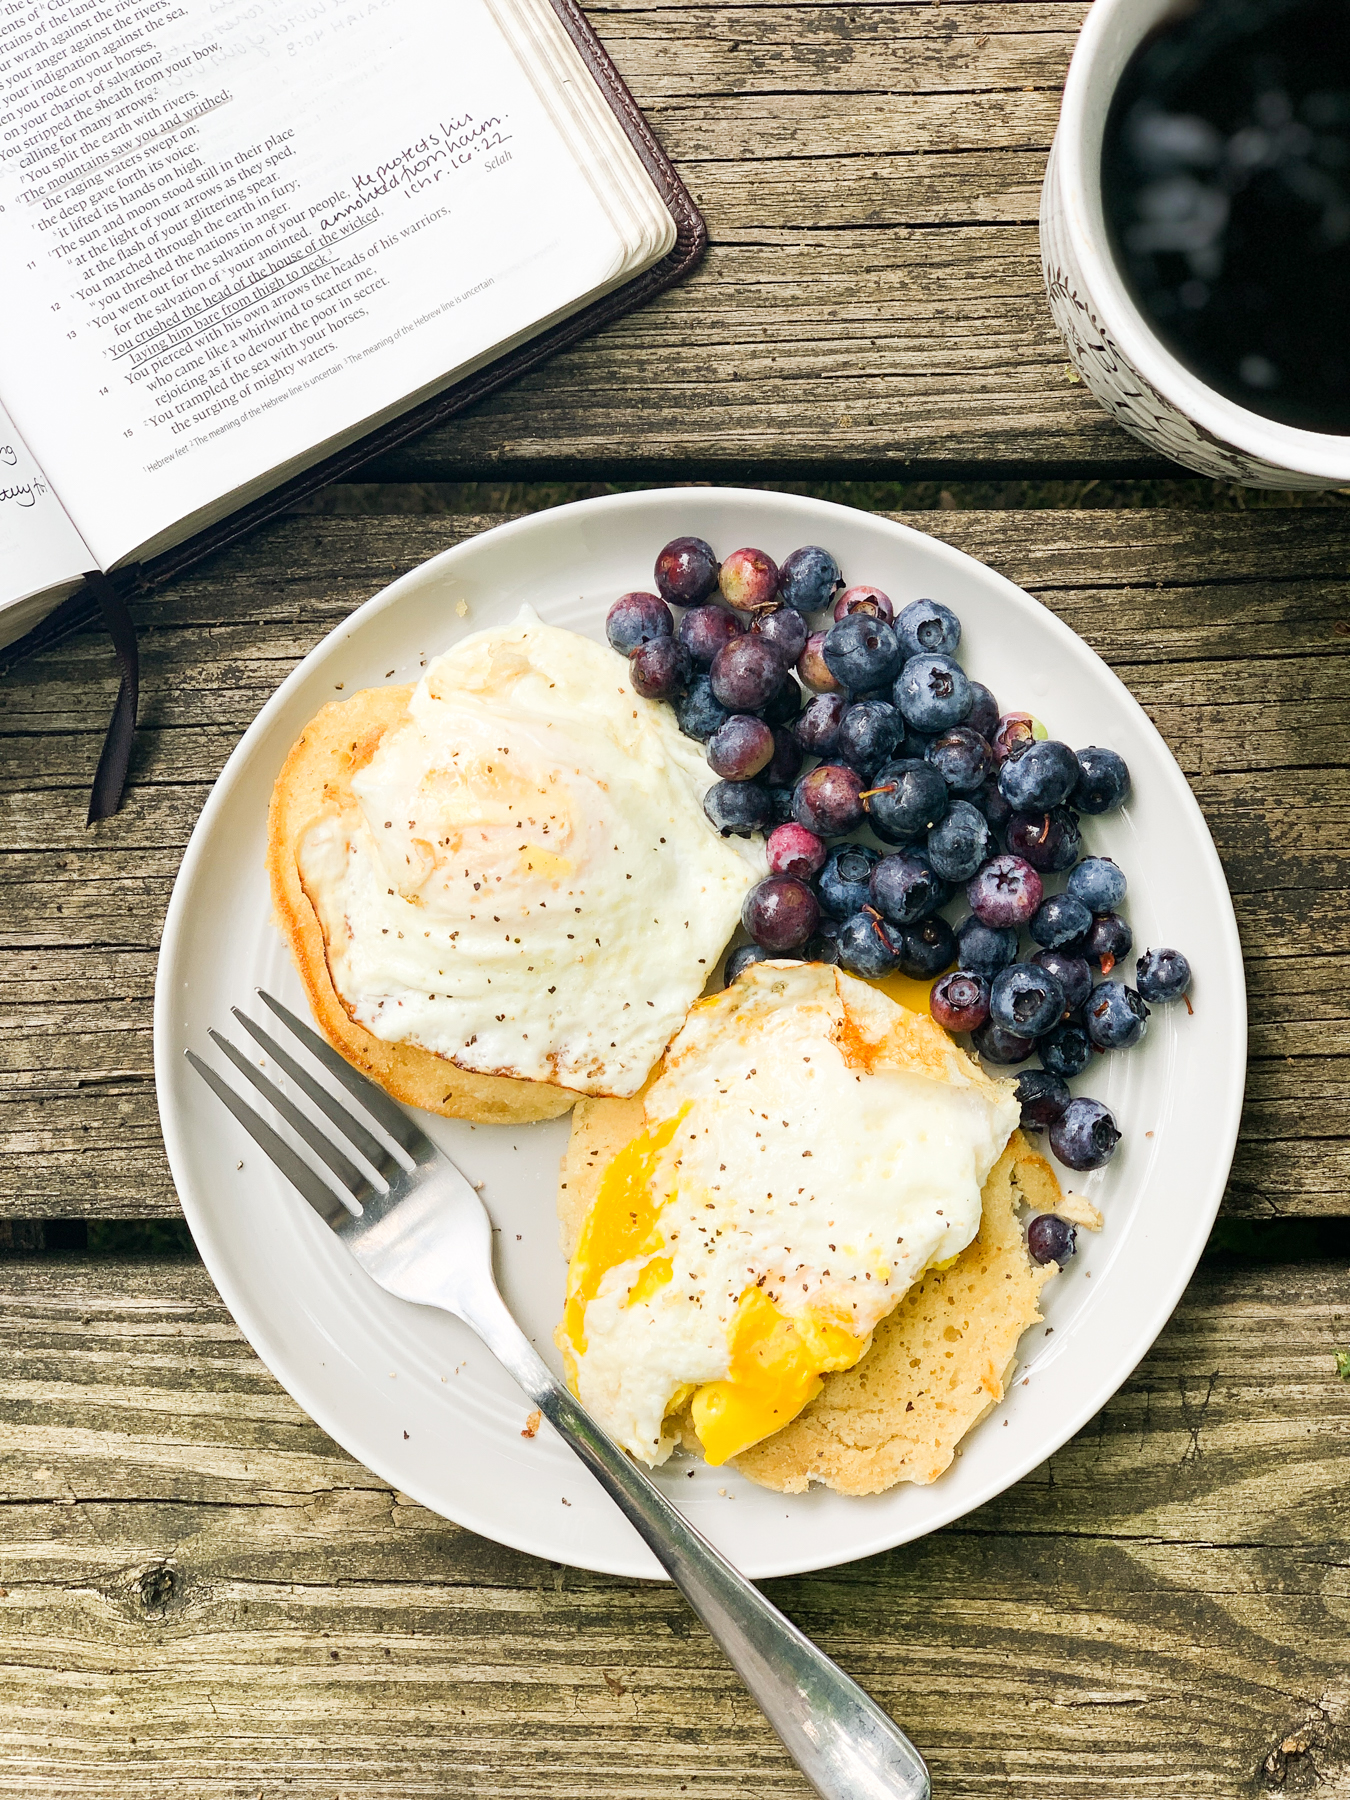 leftover pancakes with fried eggs and blueberries on a picnic table